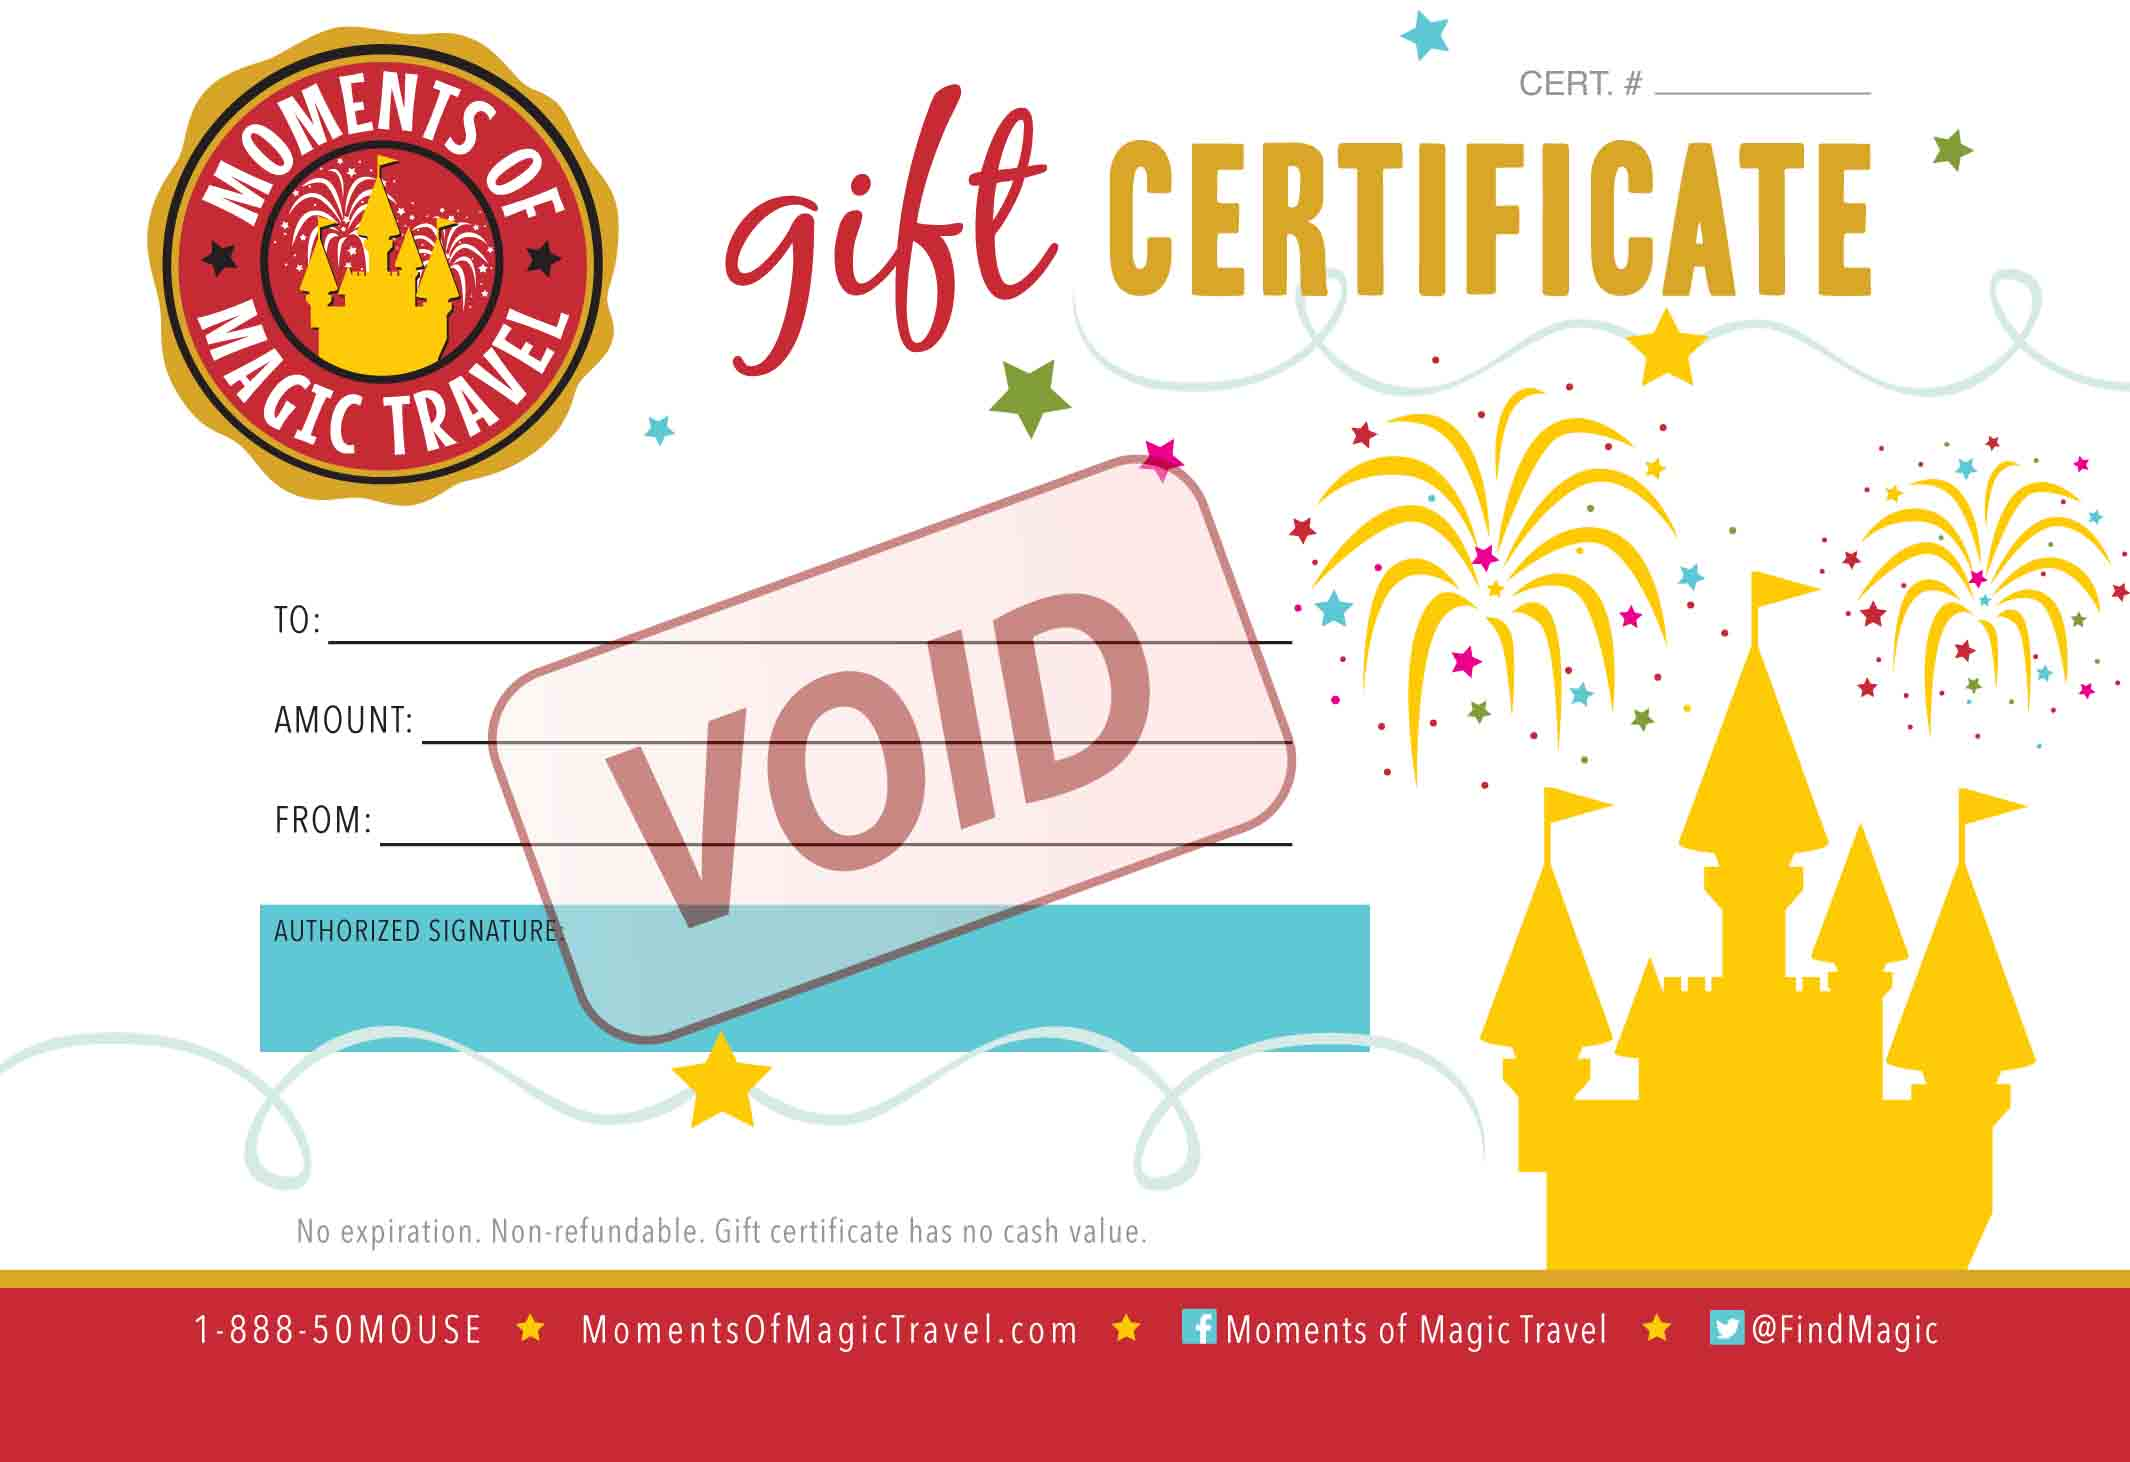 Free gift certificate offer cyber monday deal moments of magic giftcertificatesample xflitez Images